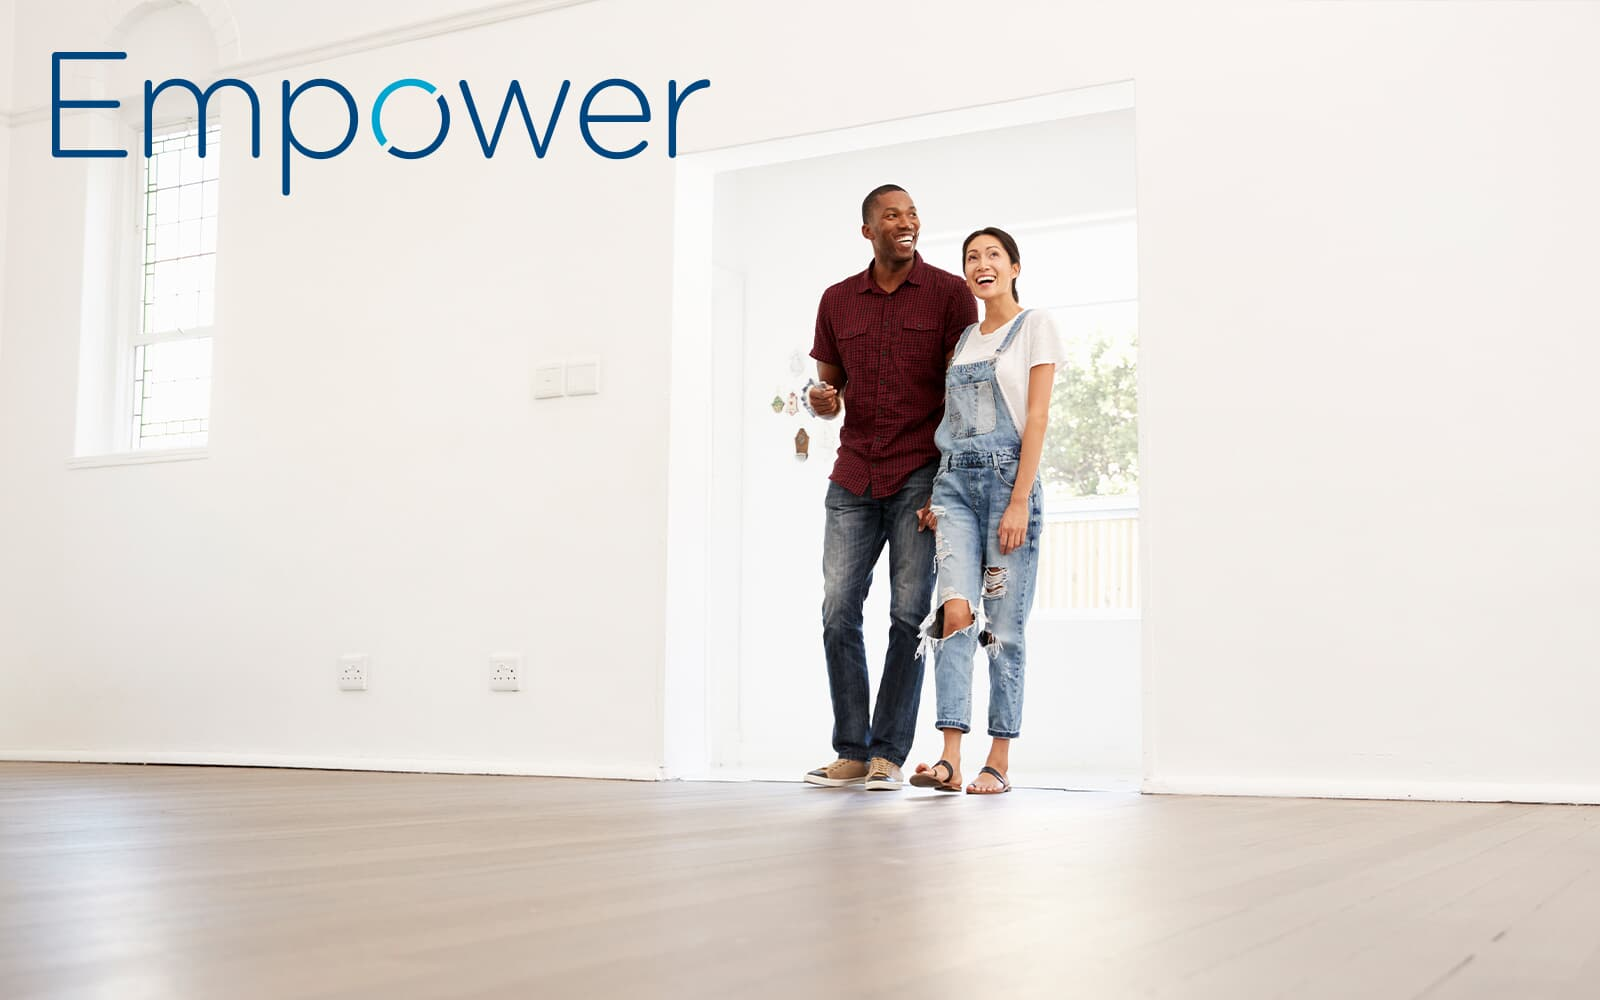 Empower logo over an image of a young couple standing in an open room of a new home